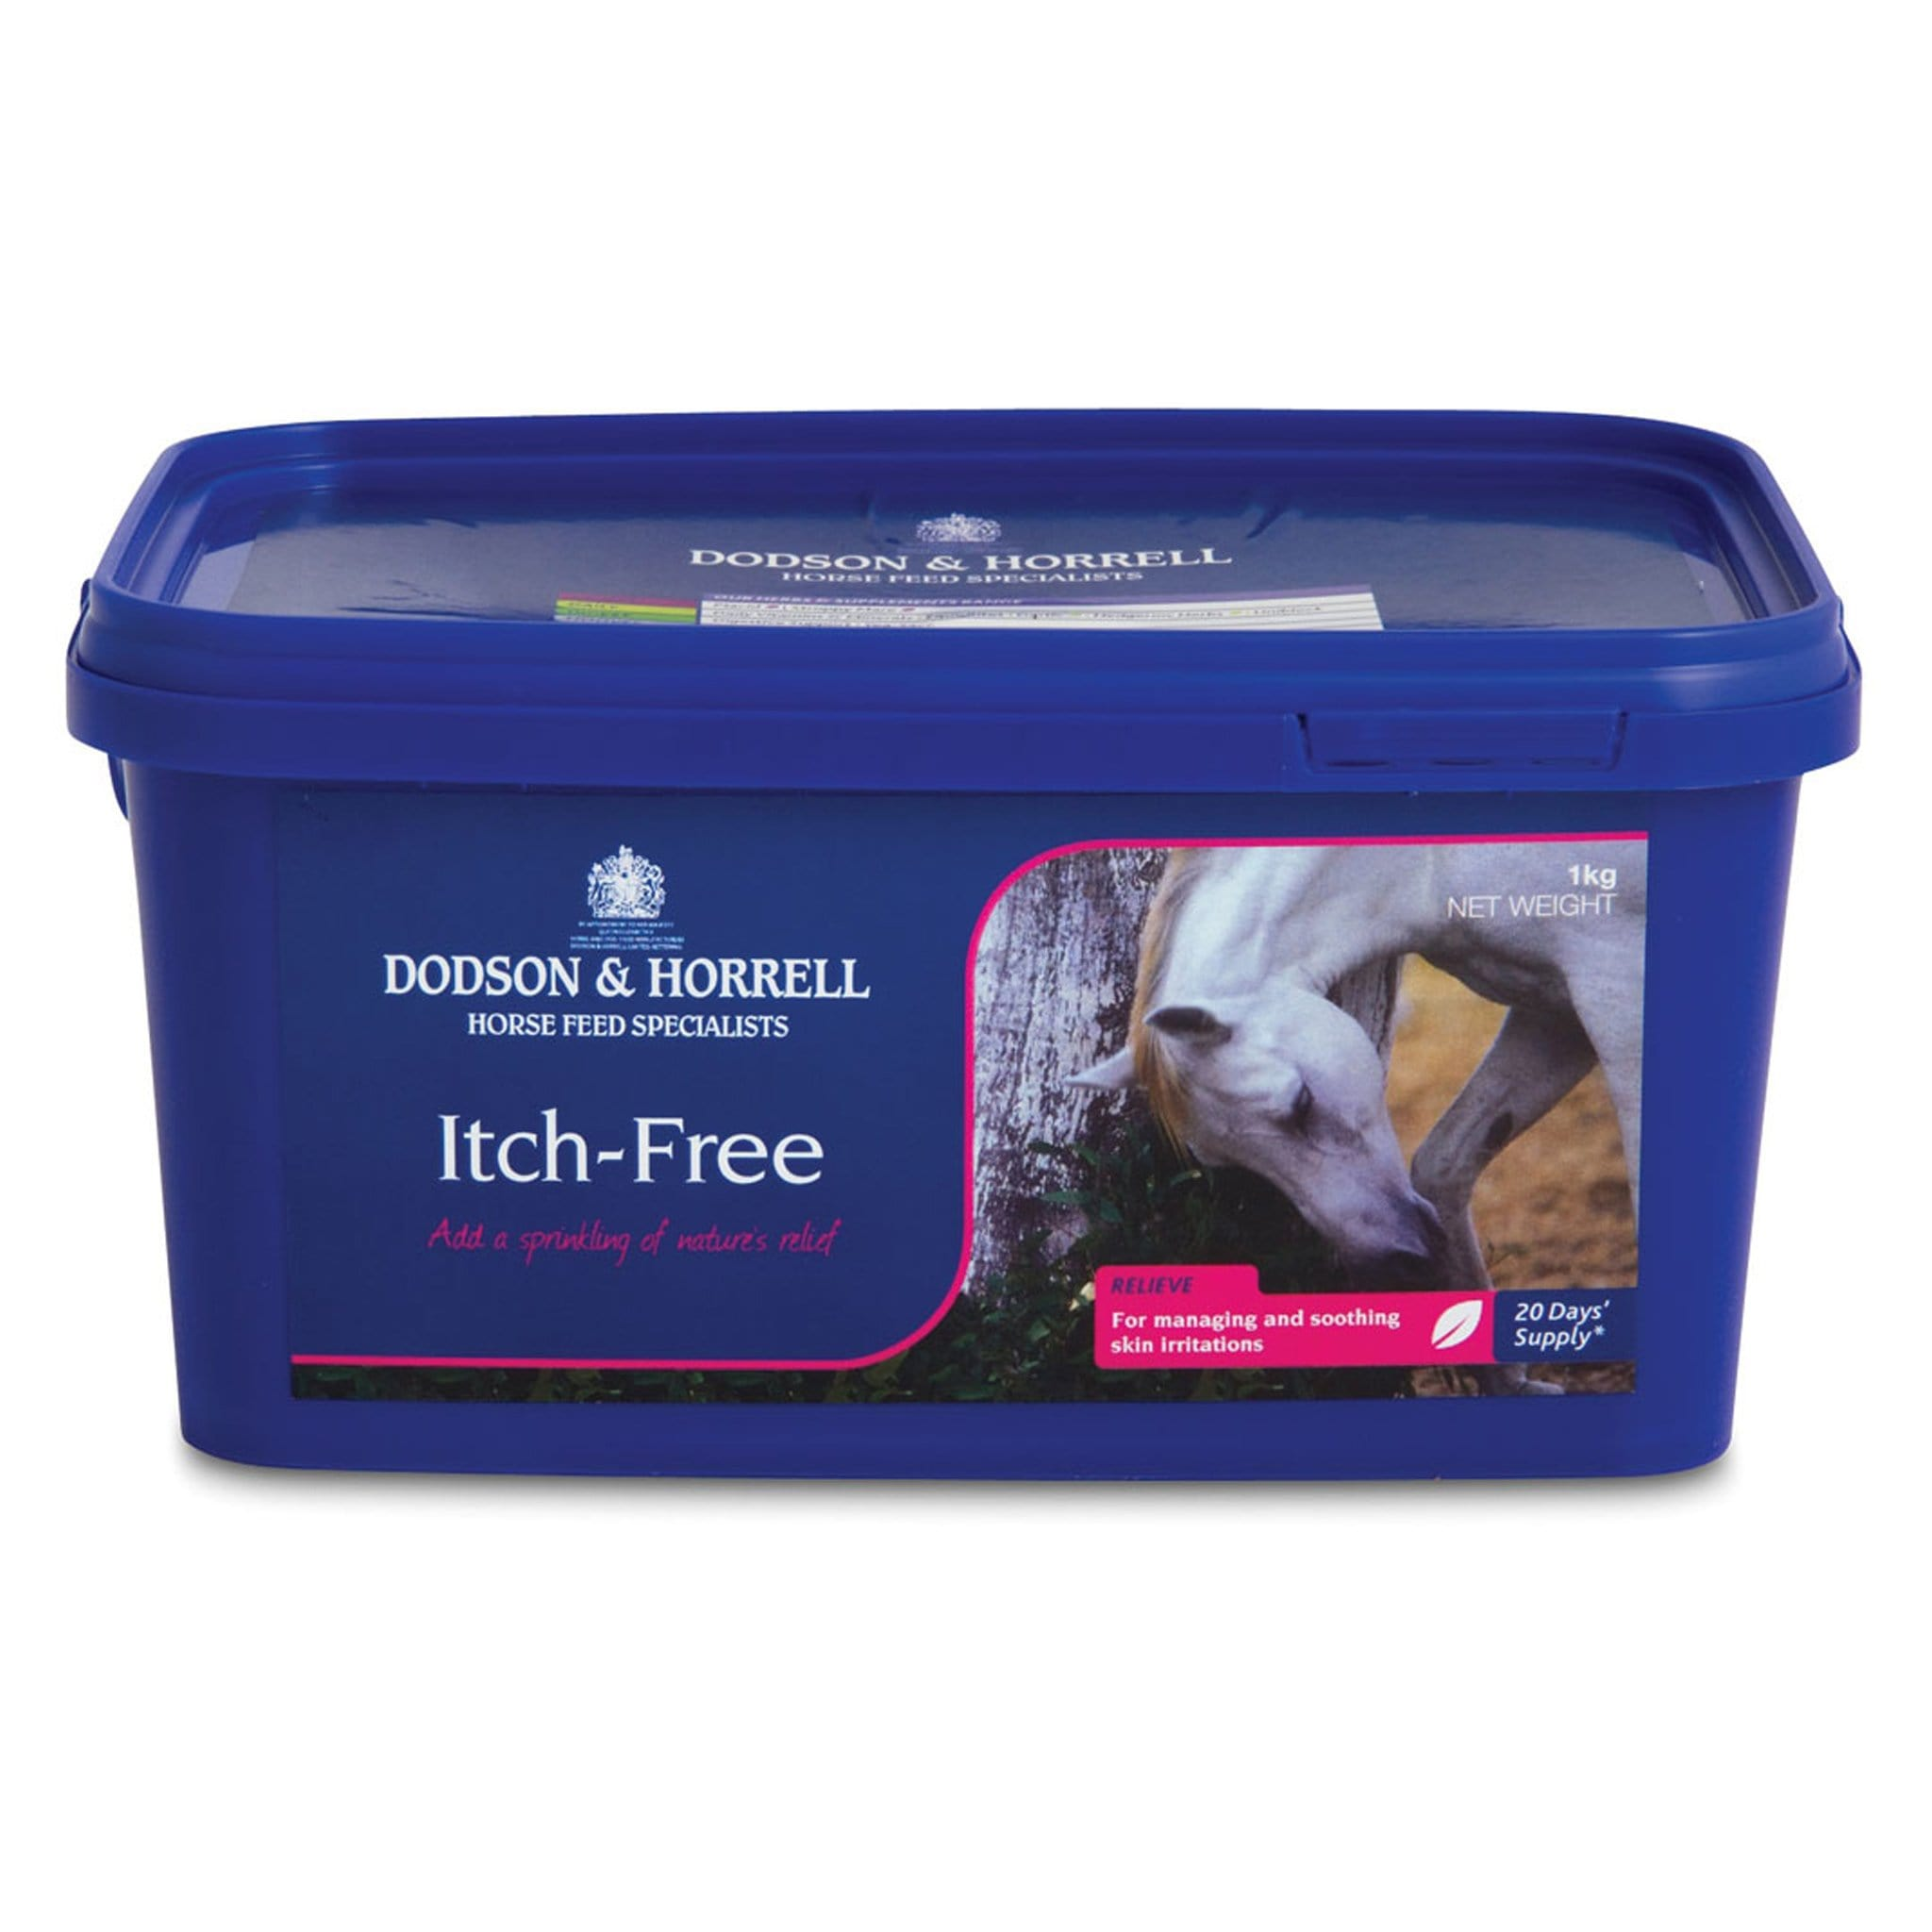 Dodson and Horrell Itch Free 1kg 1112